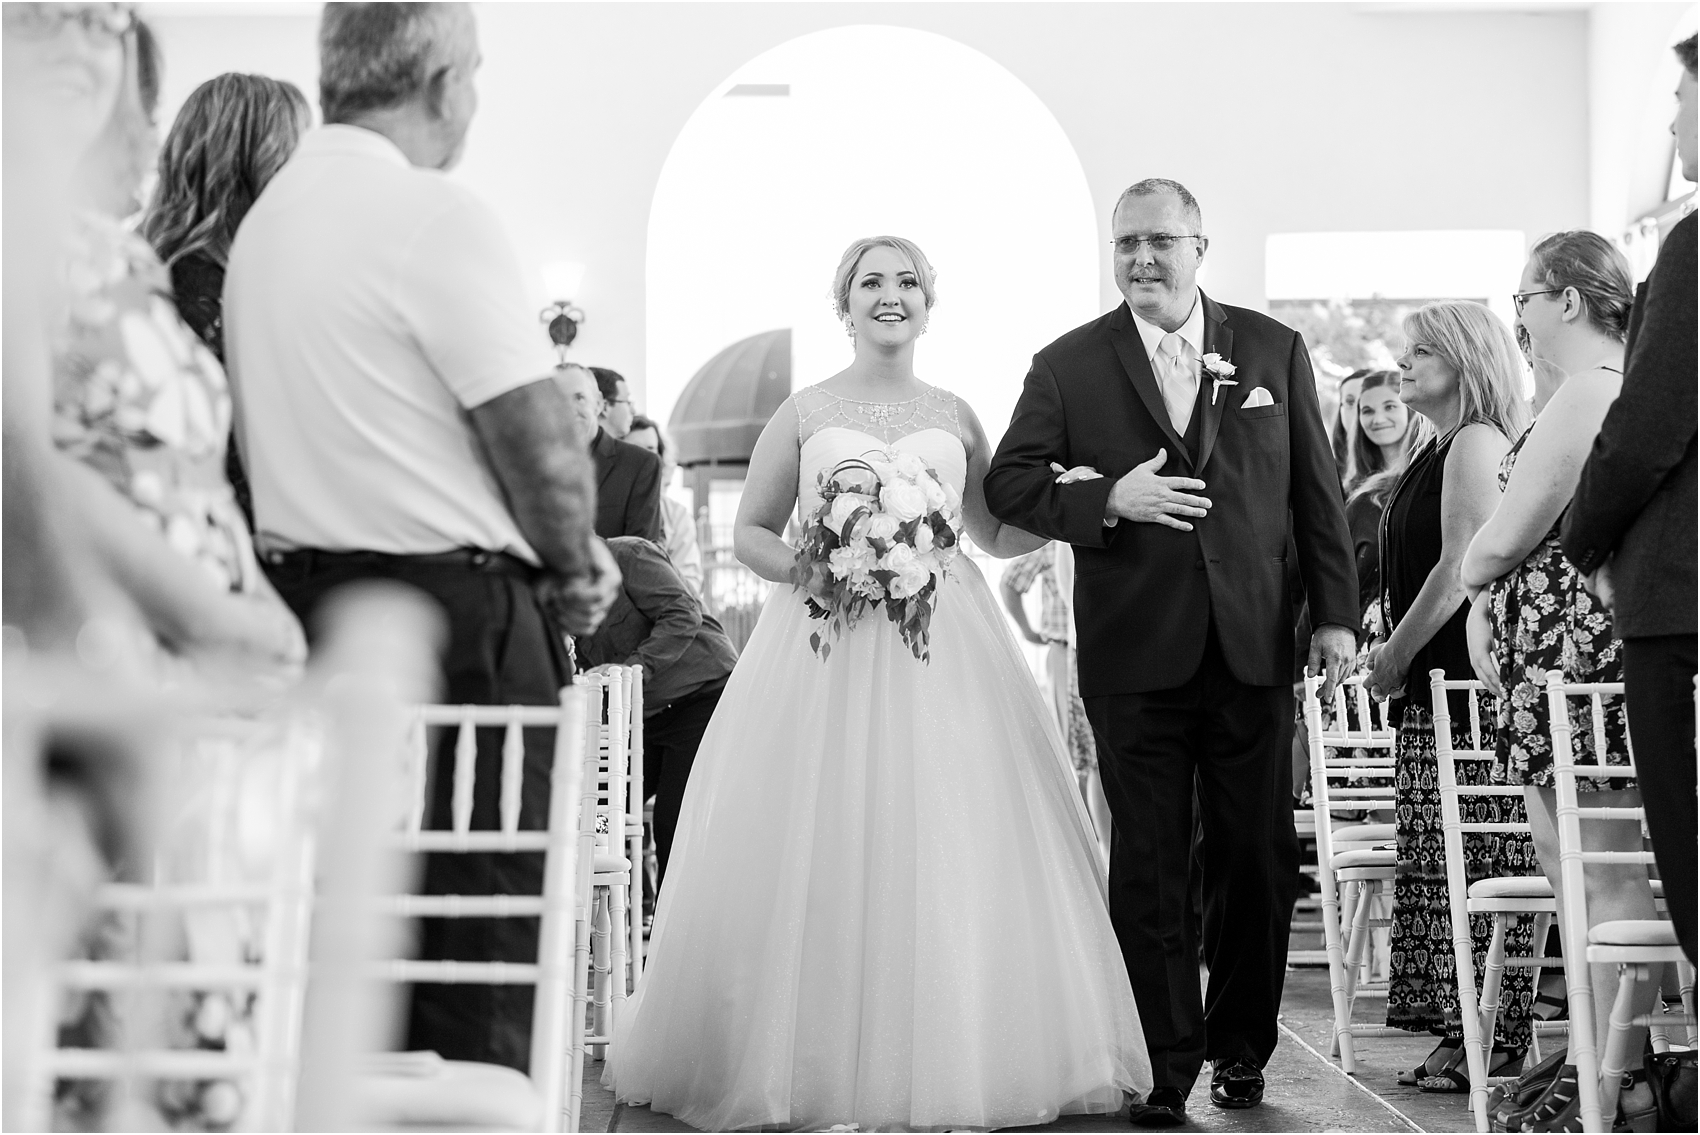 lord-of-the-rings-inspired-wedding-photos-at-crystal-gardens-in-howell-mi-by-courtney-carolyn-photography_0032.jpg